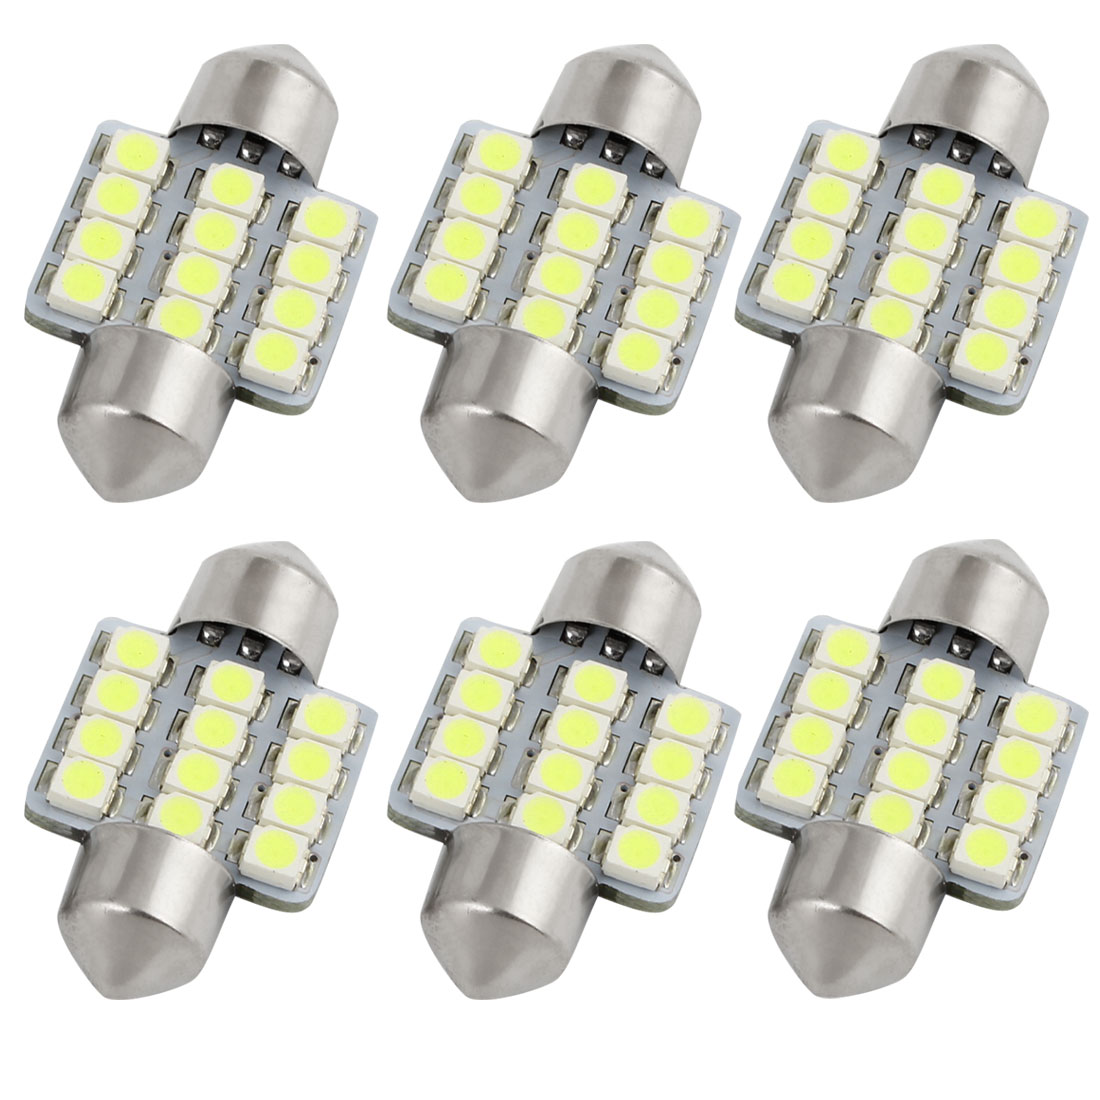 6 Pcs 31mm 12 SMD 3528 LED White Festoon Map Light Lamp 6428 DE3021 Internal